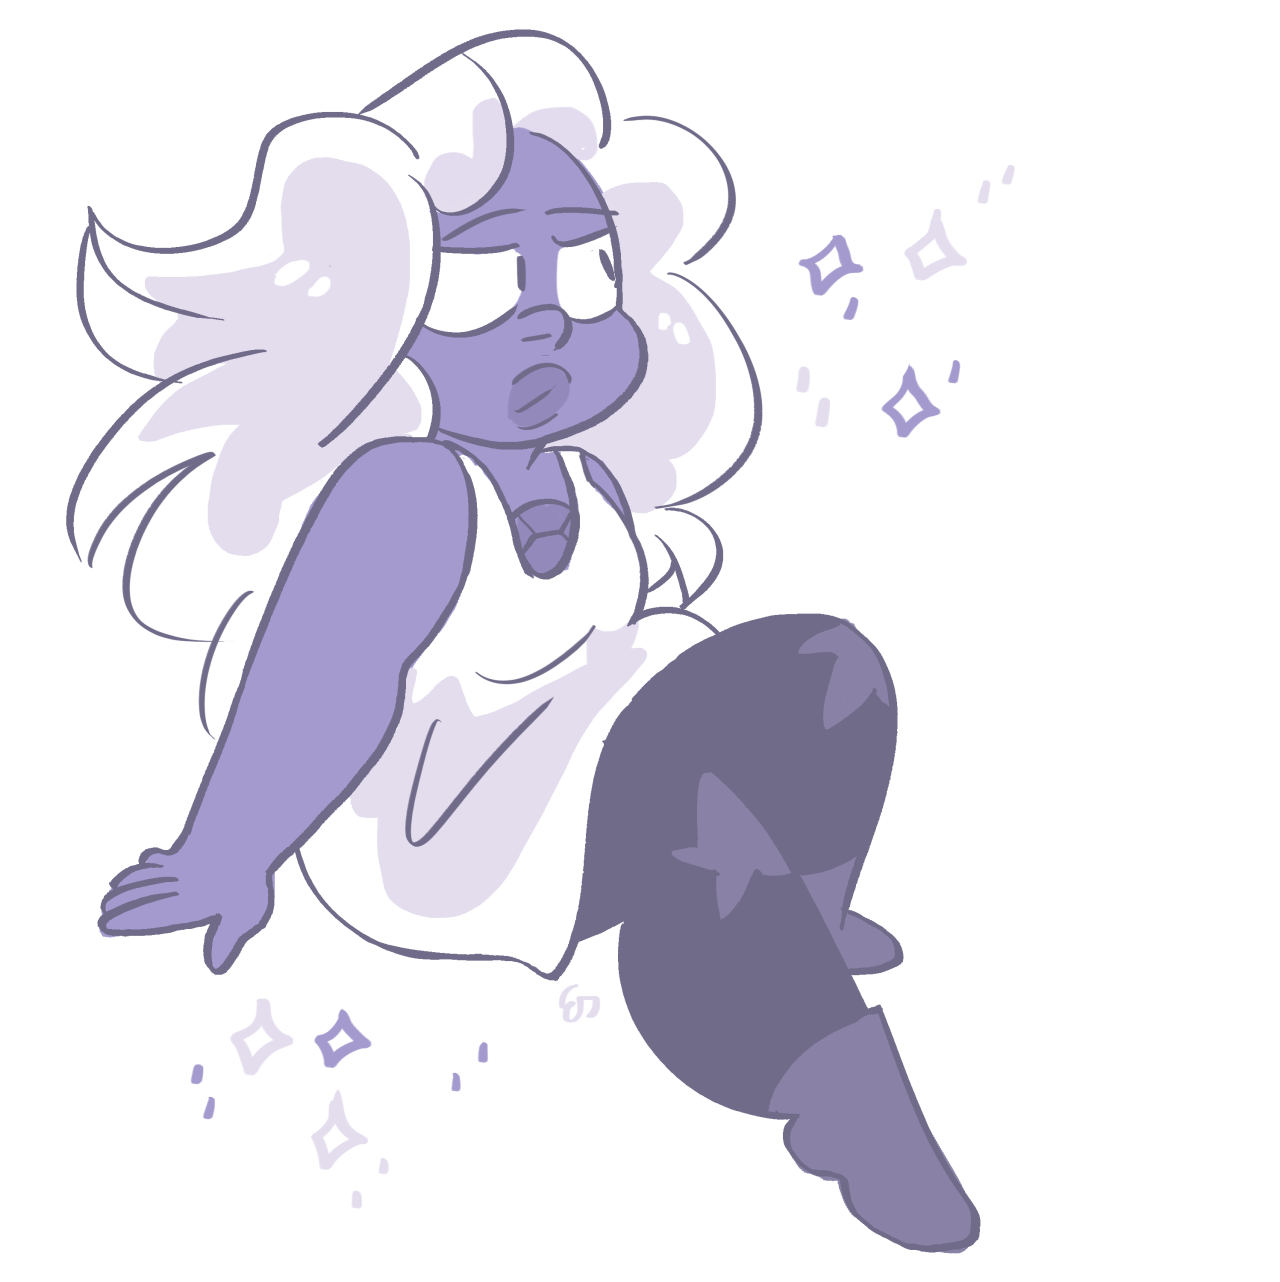 hey wheres all my amethyst episodes